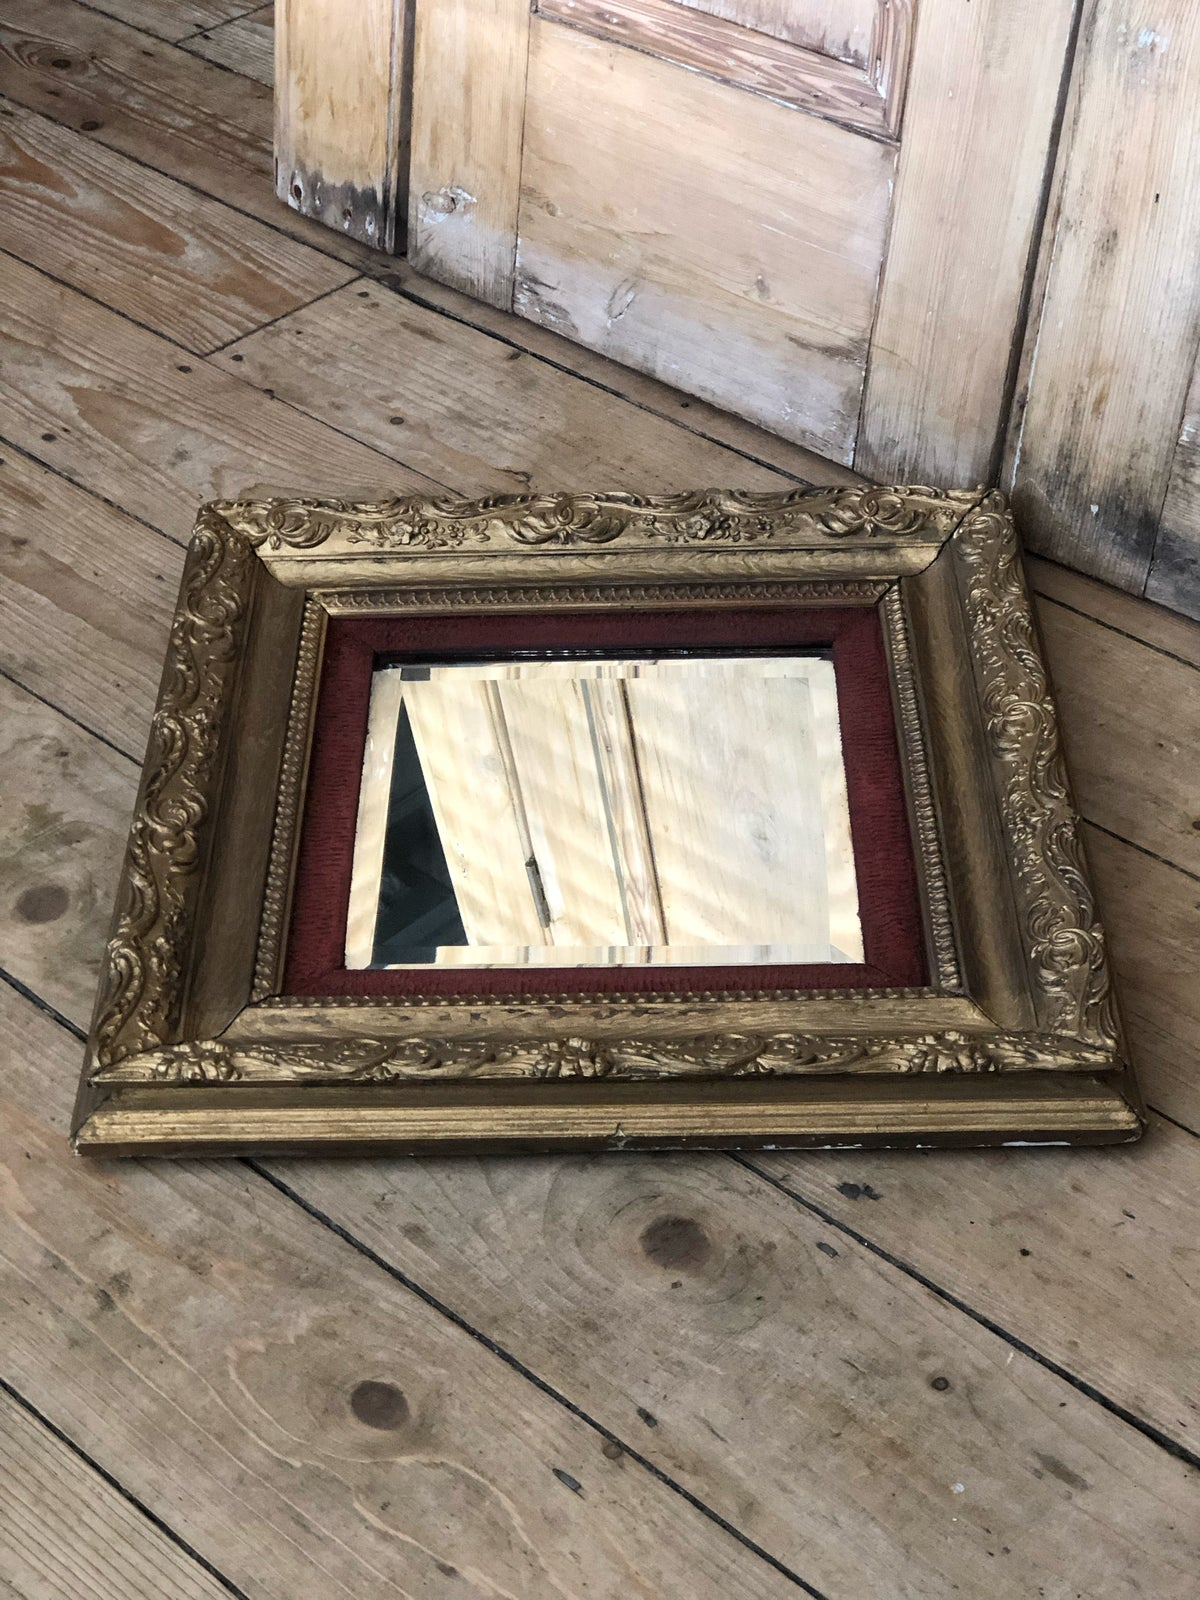 Image of Ornate gold mirror with red trim